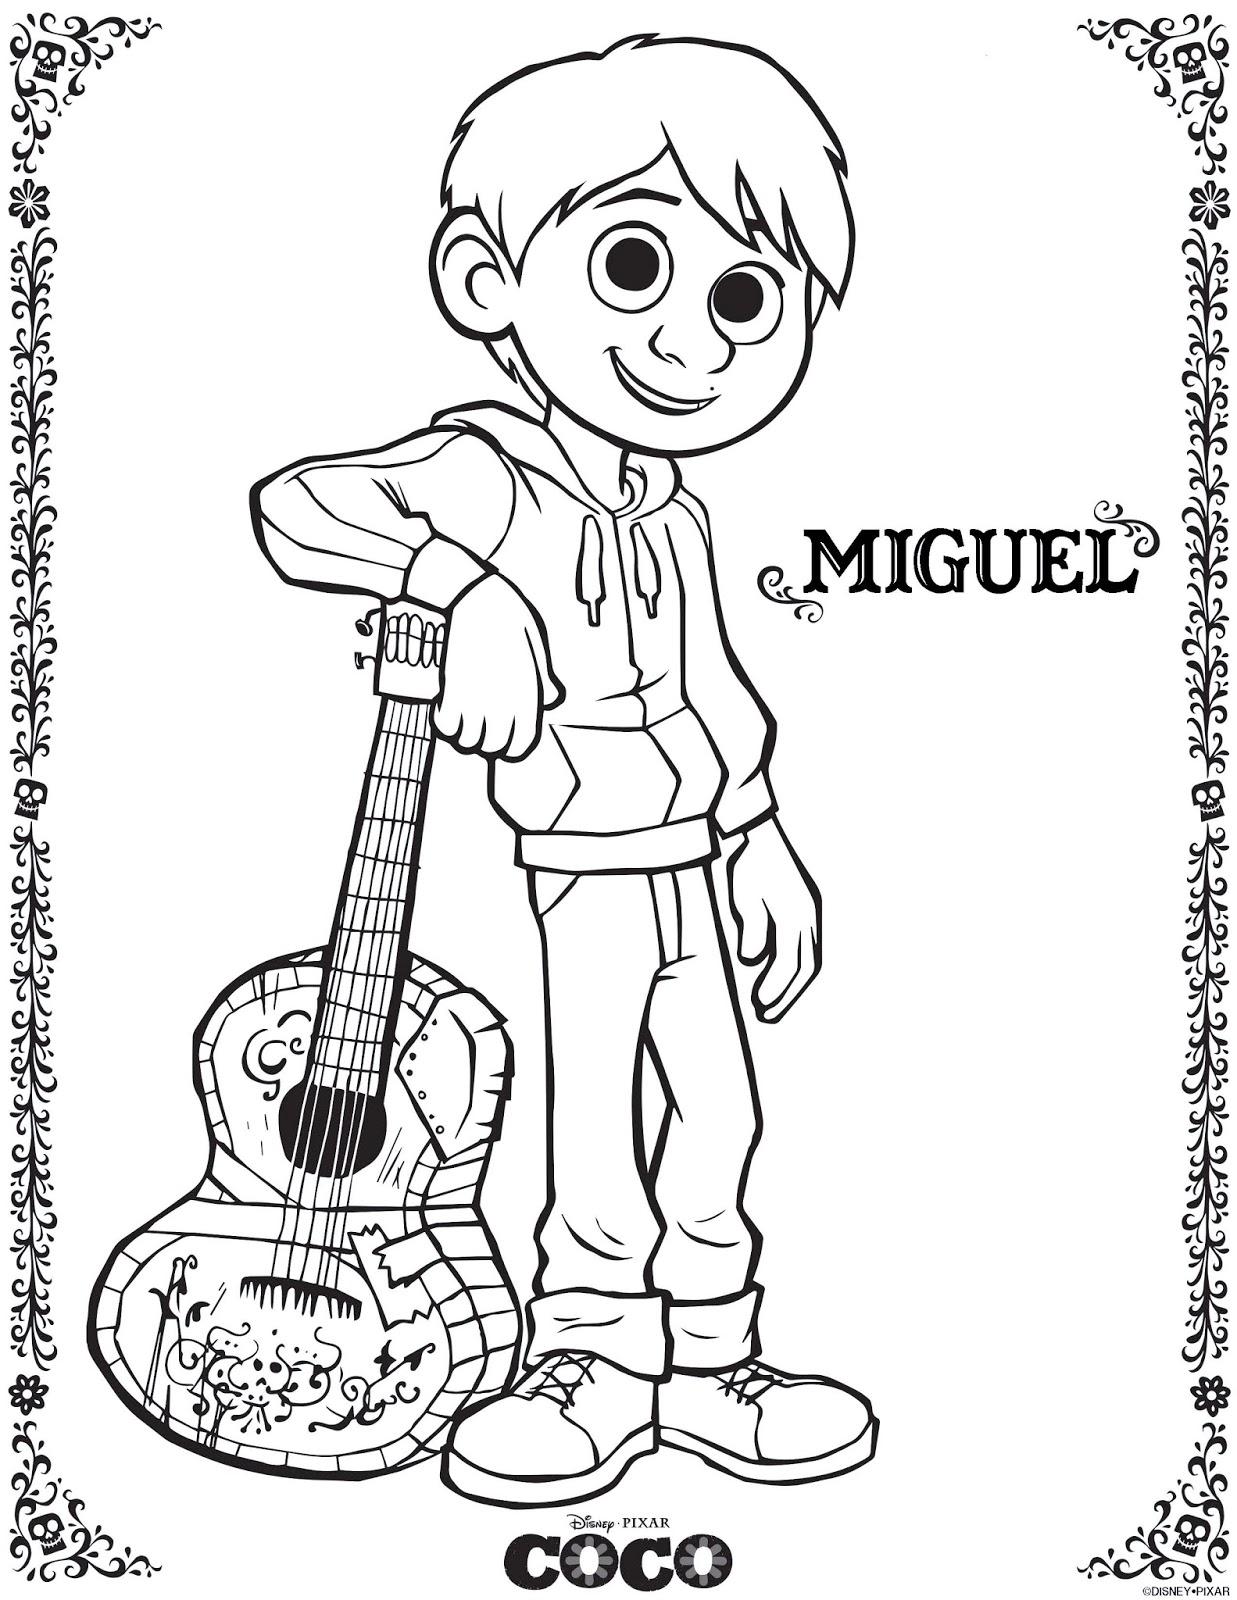 coco movie coloring pages Index of /wp content/uploads/2017/09 coco movie coloring pages